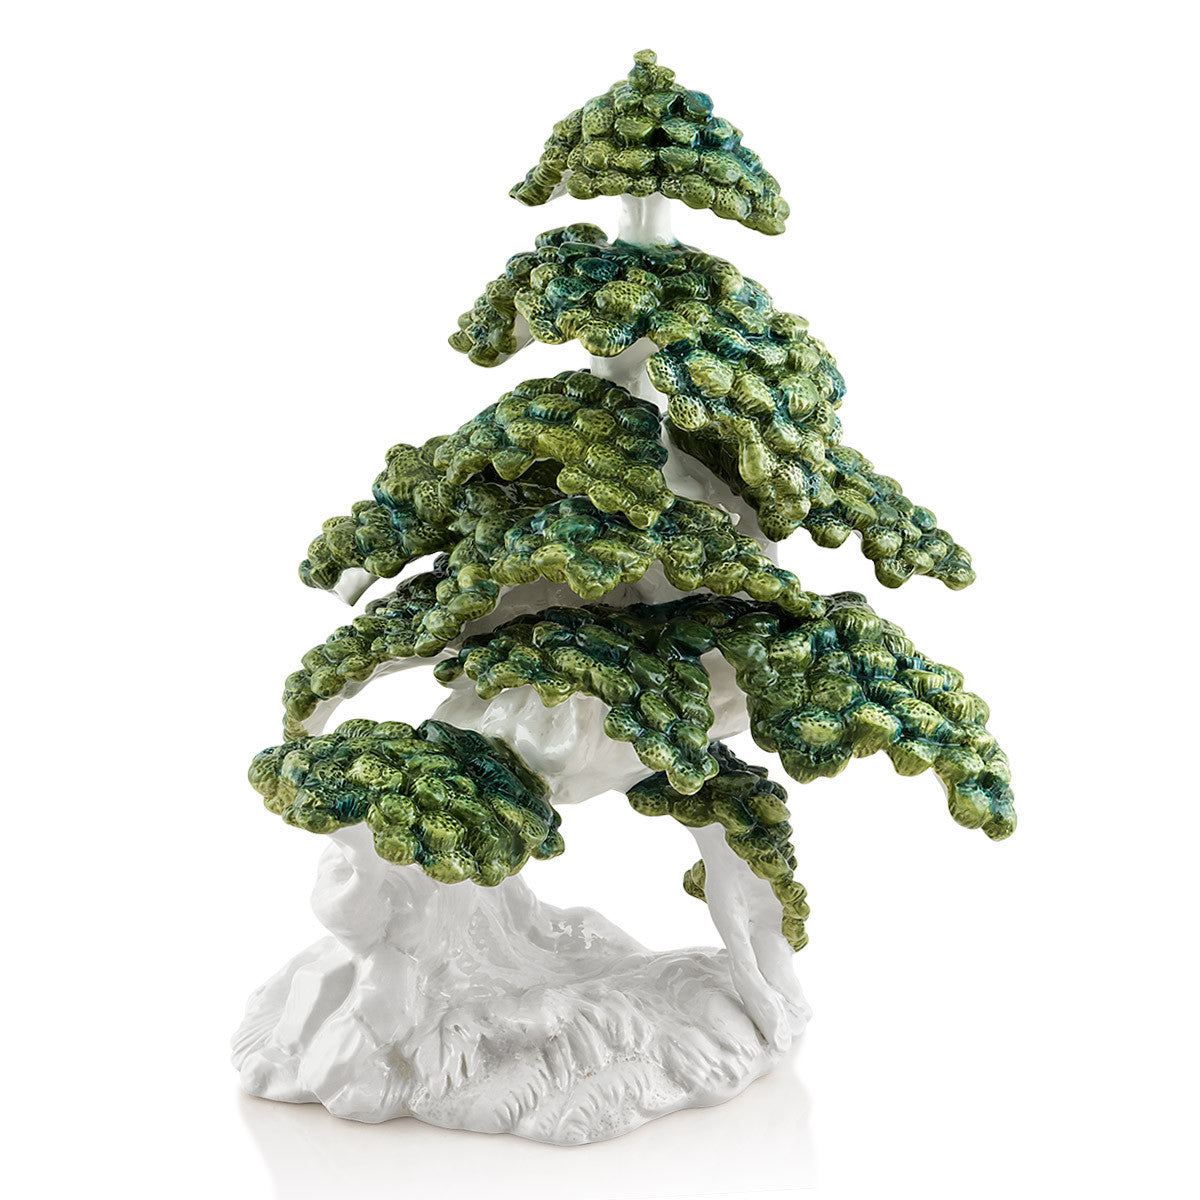 ceramic bonsai Tree Sculpture miniature figurine